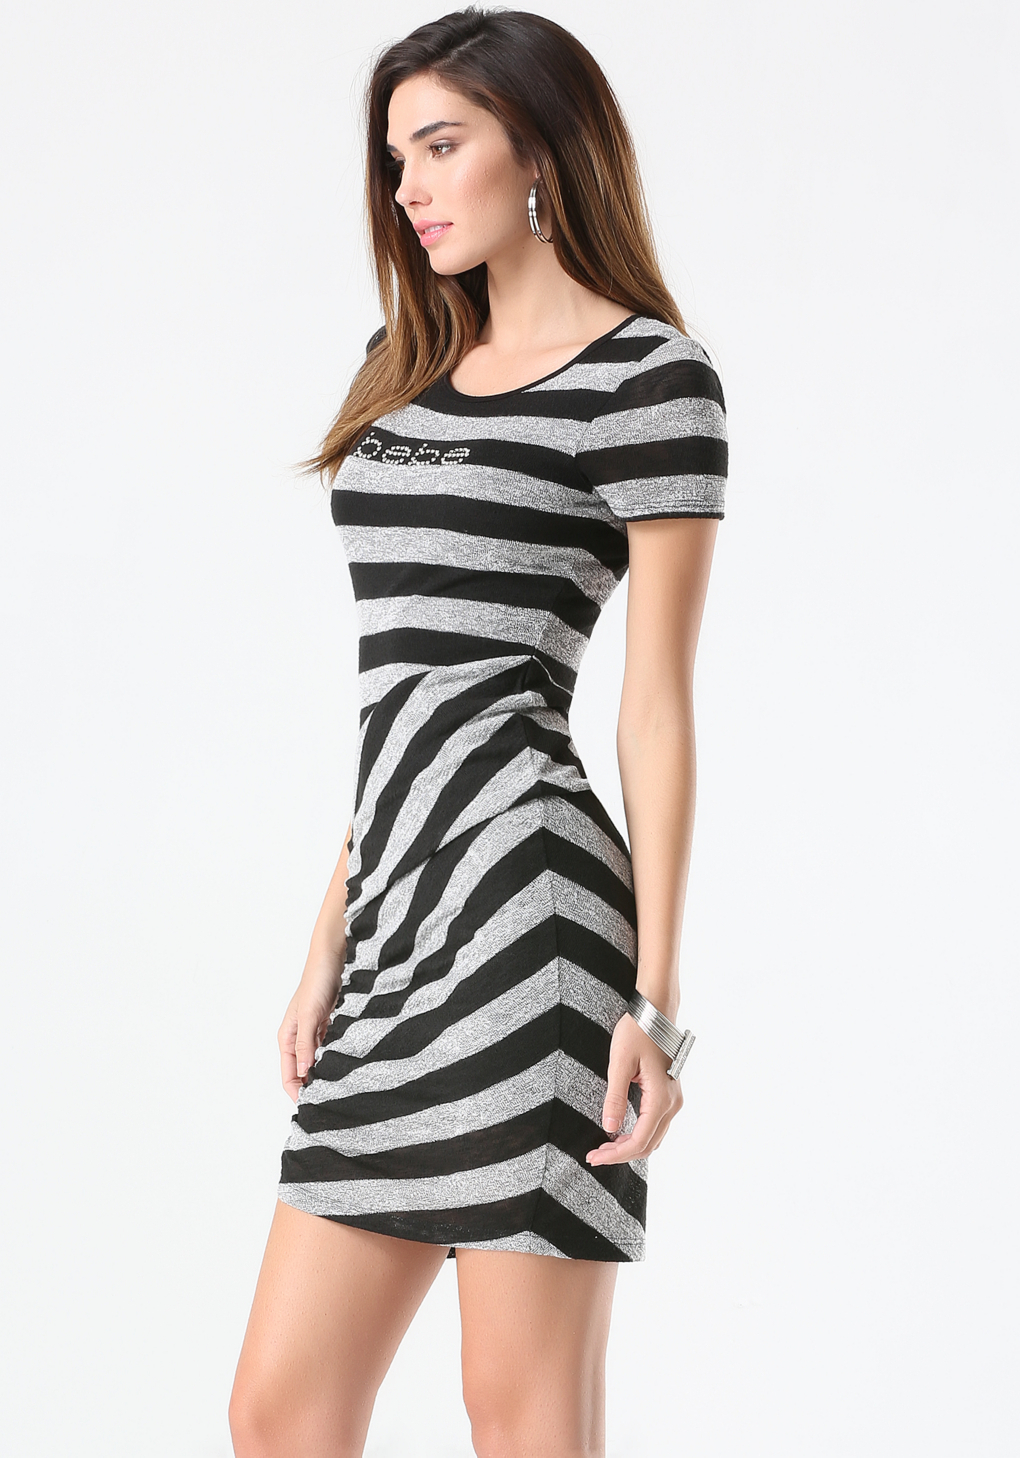 Casual Bebe dresses on sale like the Teresa Net dress and evening gowns like the Double V-Neck Metallic gown are a few of Bebe's fan-favorites. Celebrities like Rebecca Romijn, Eva Longoria, and Kim Kardashian have all had ad campaigns with the popular brand.